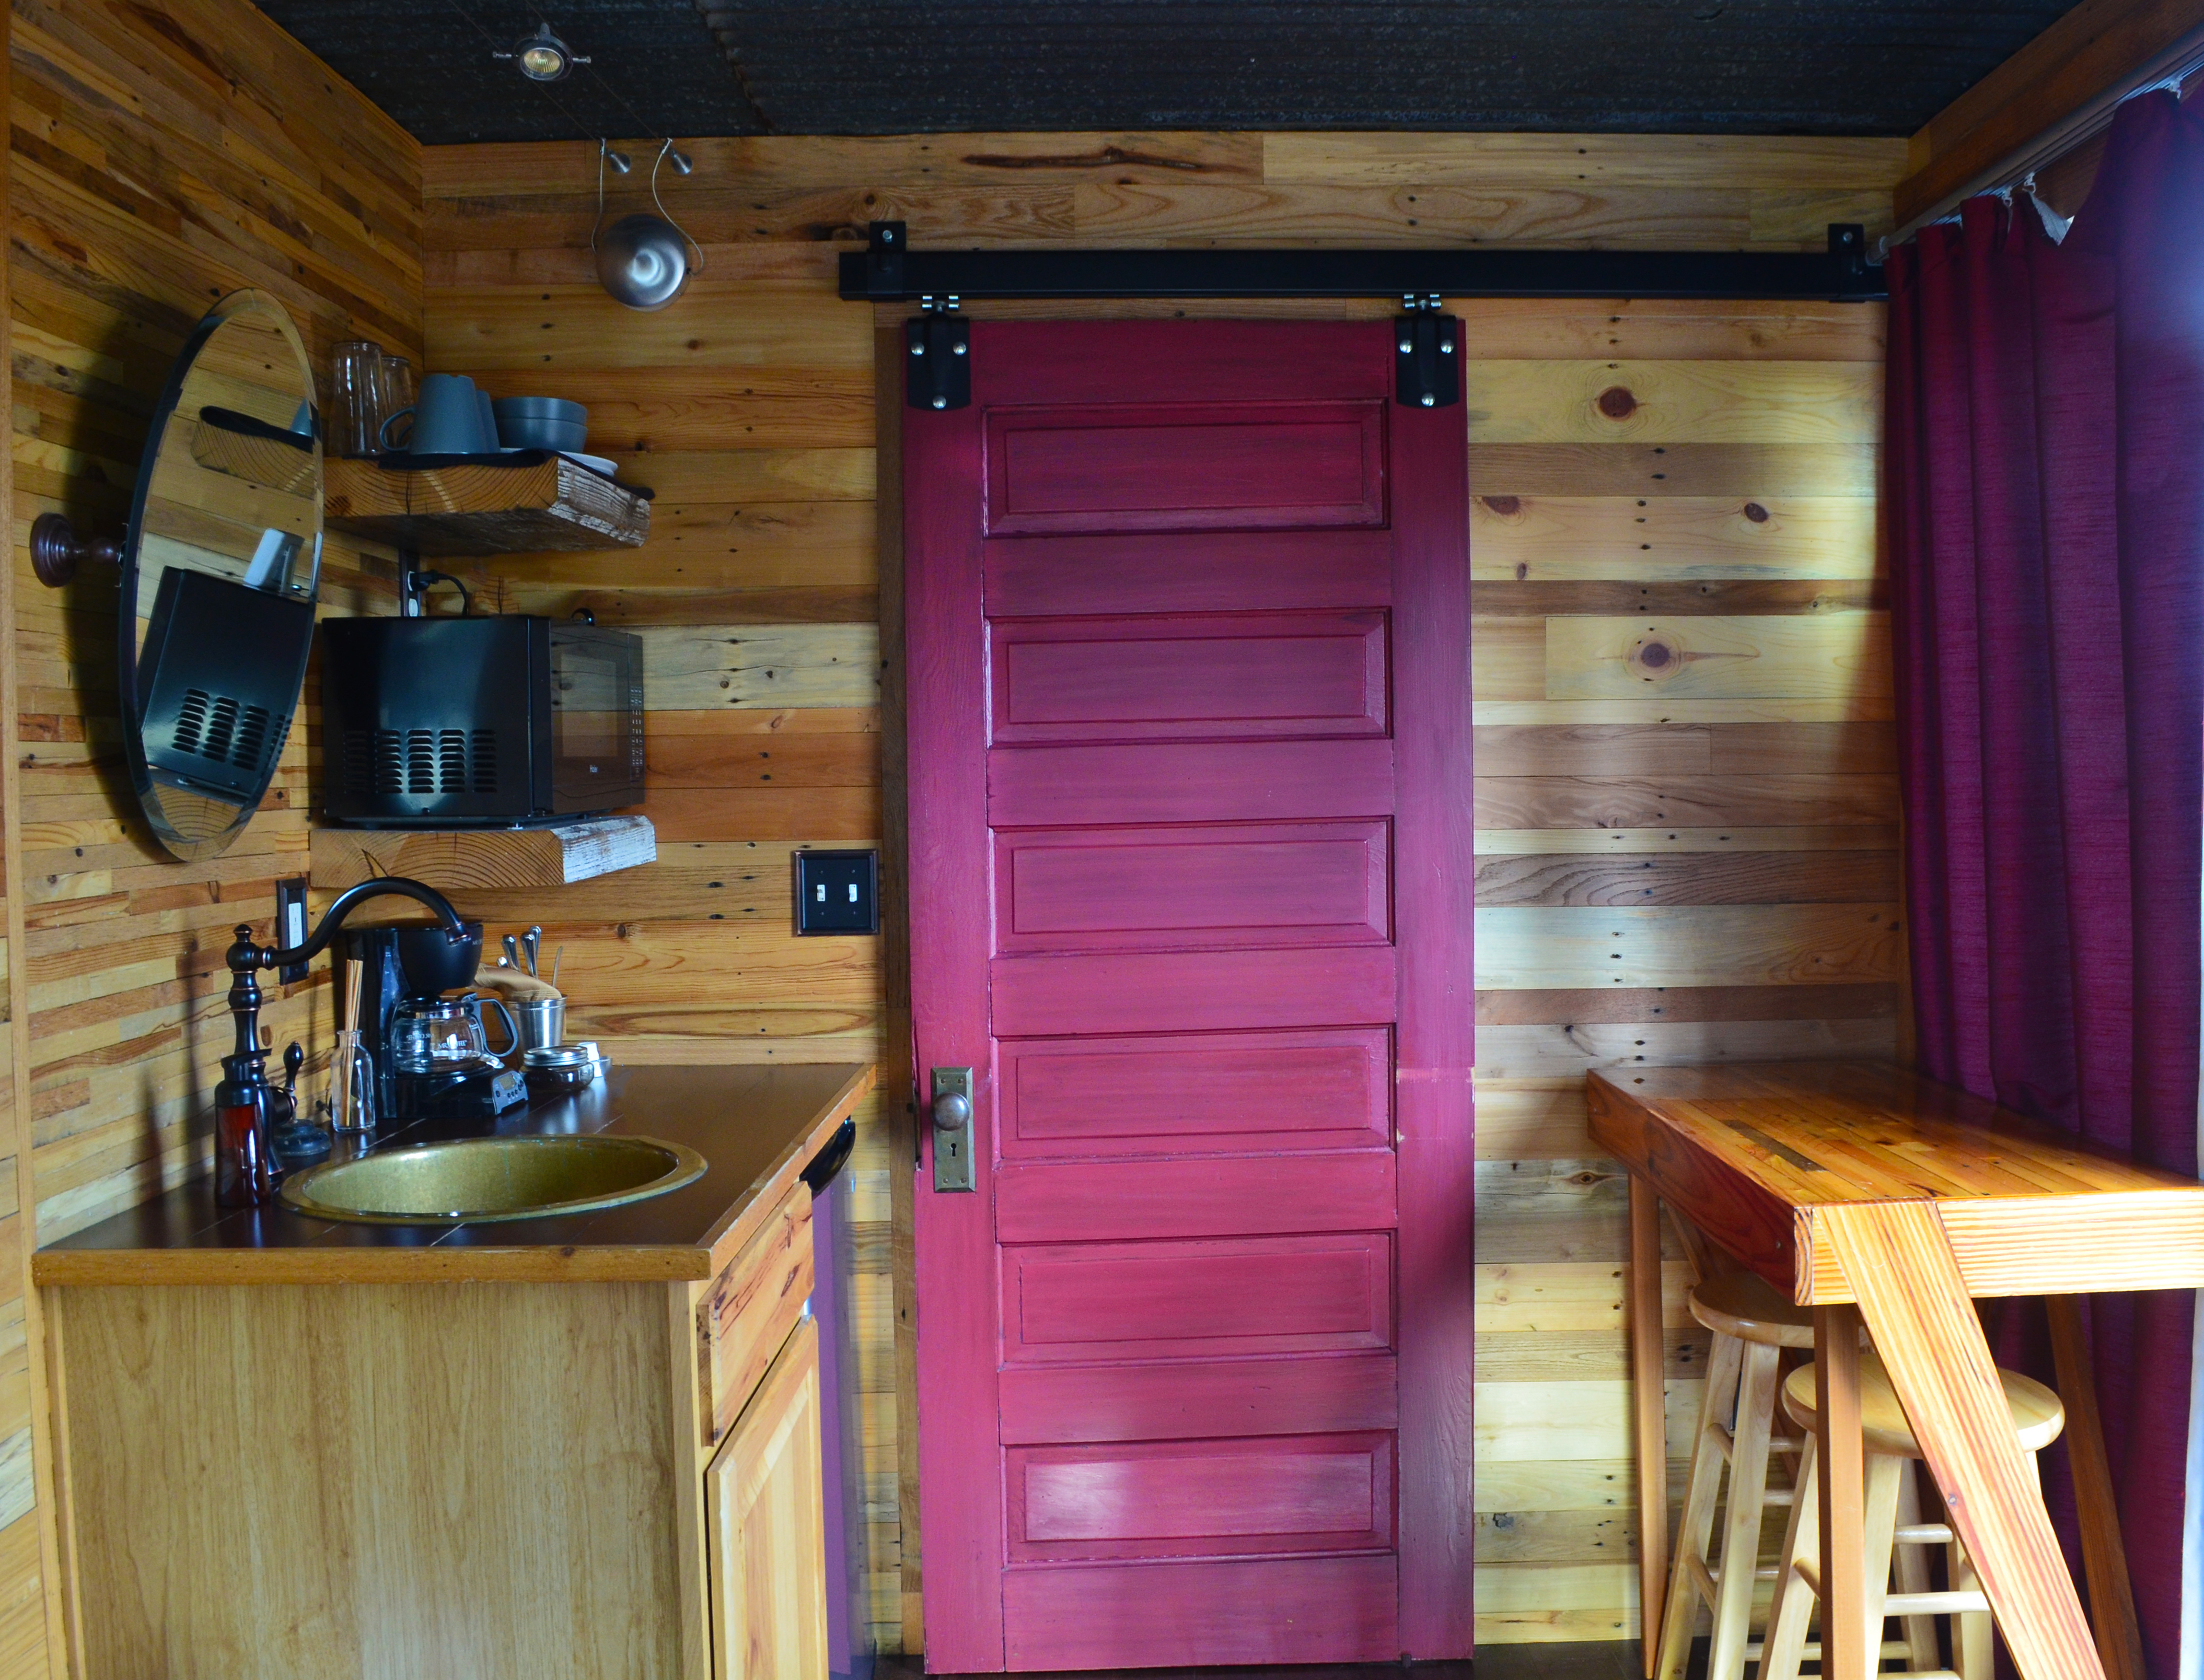 onlinechange hot with ga mountain pet in friendly rental tubs georgia cabins dahlonega interior info